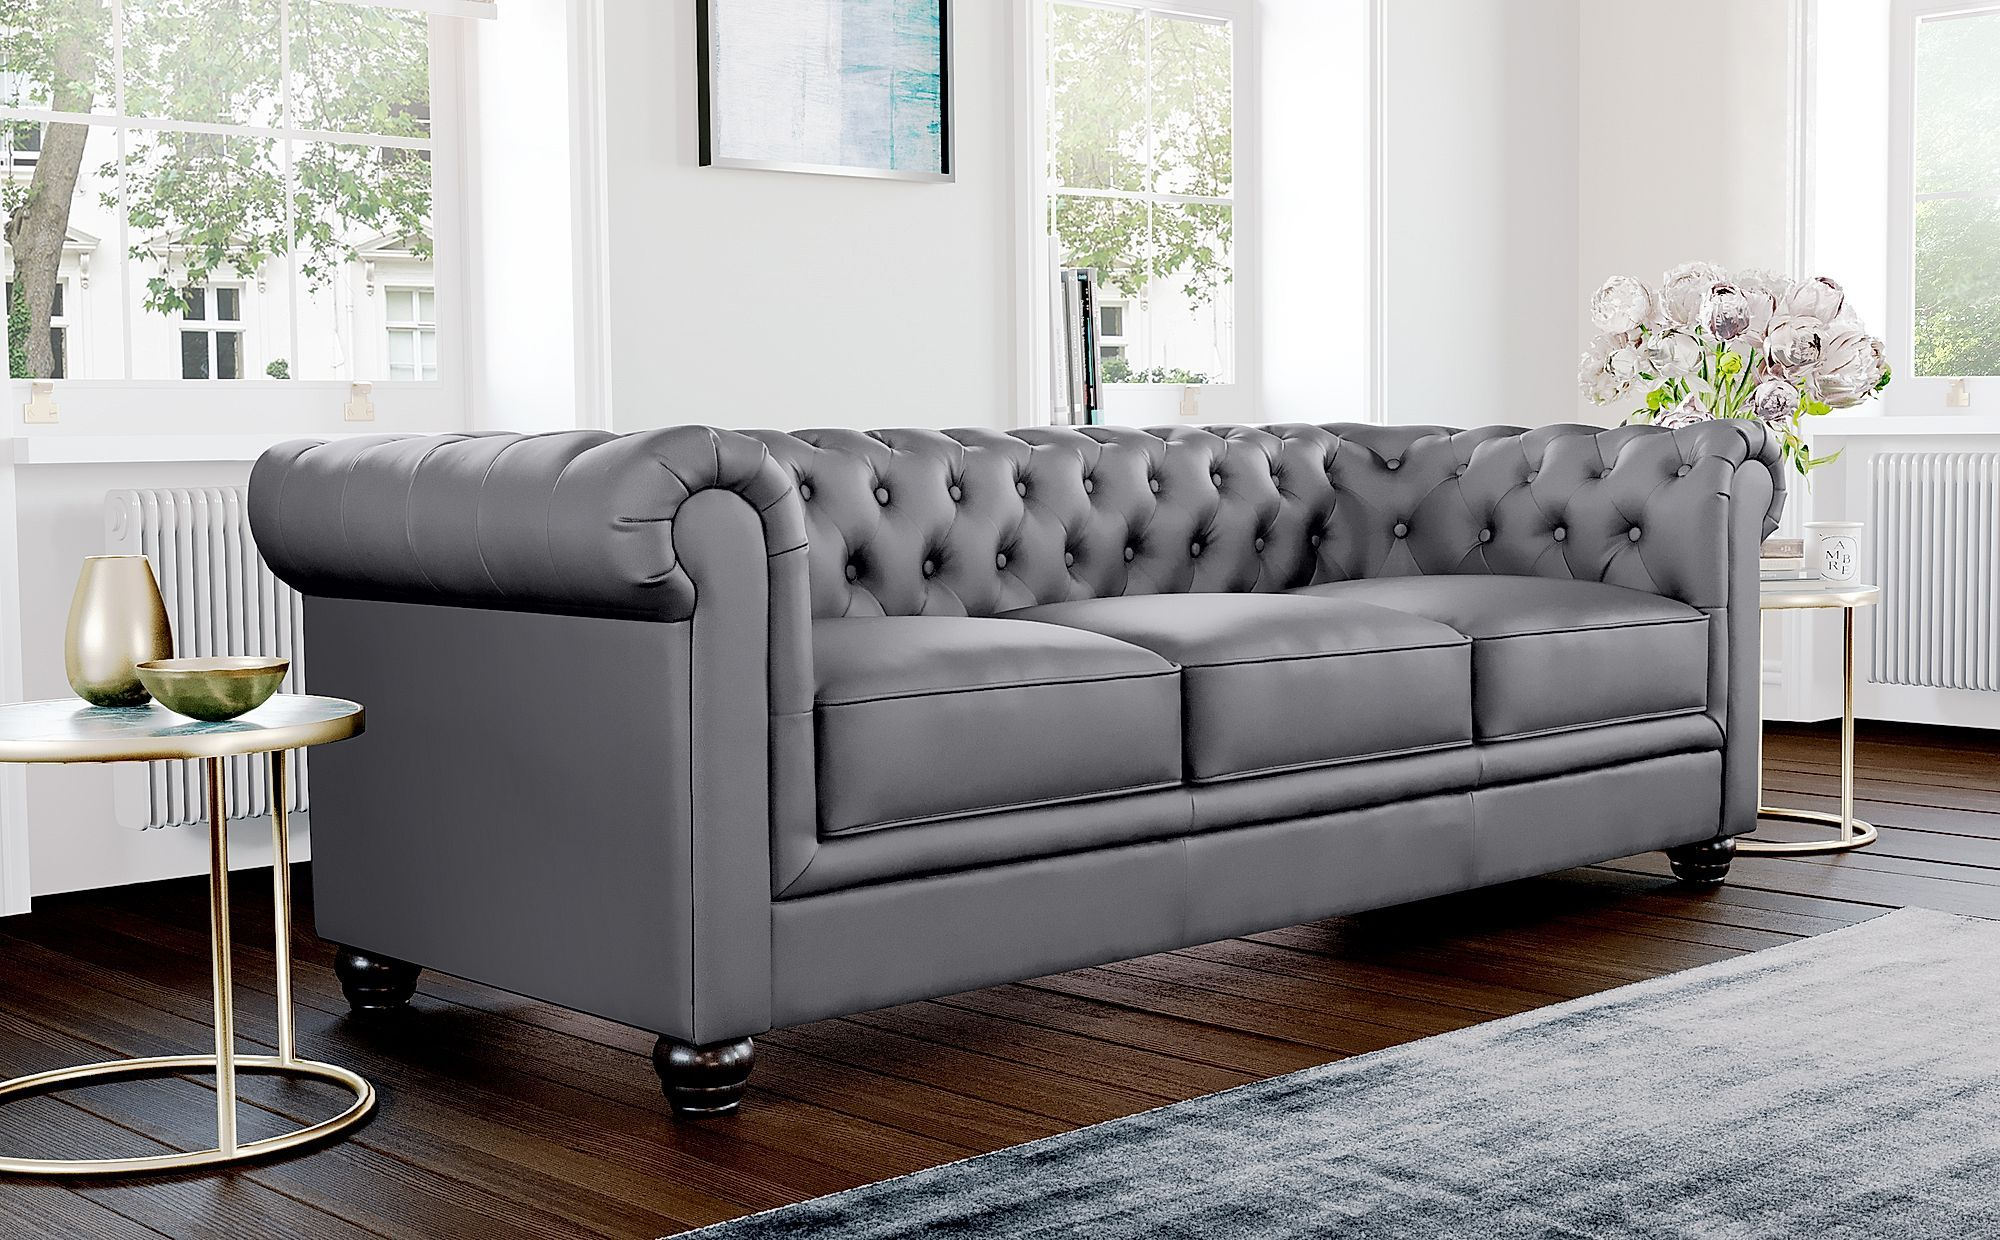 Hampton Grey Leather 3 2 Seater Chesterfield Sofa Set Furniture Choice In 2020 Chesterfield Sofa Living Room Chesterfield Sofa Sofa Furniture